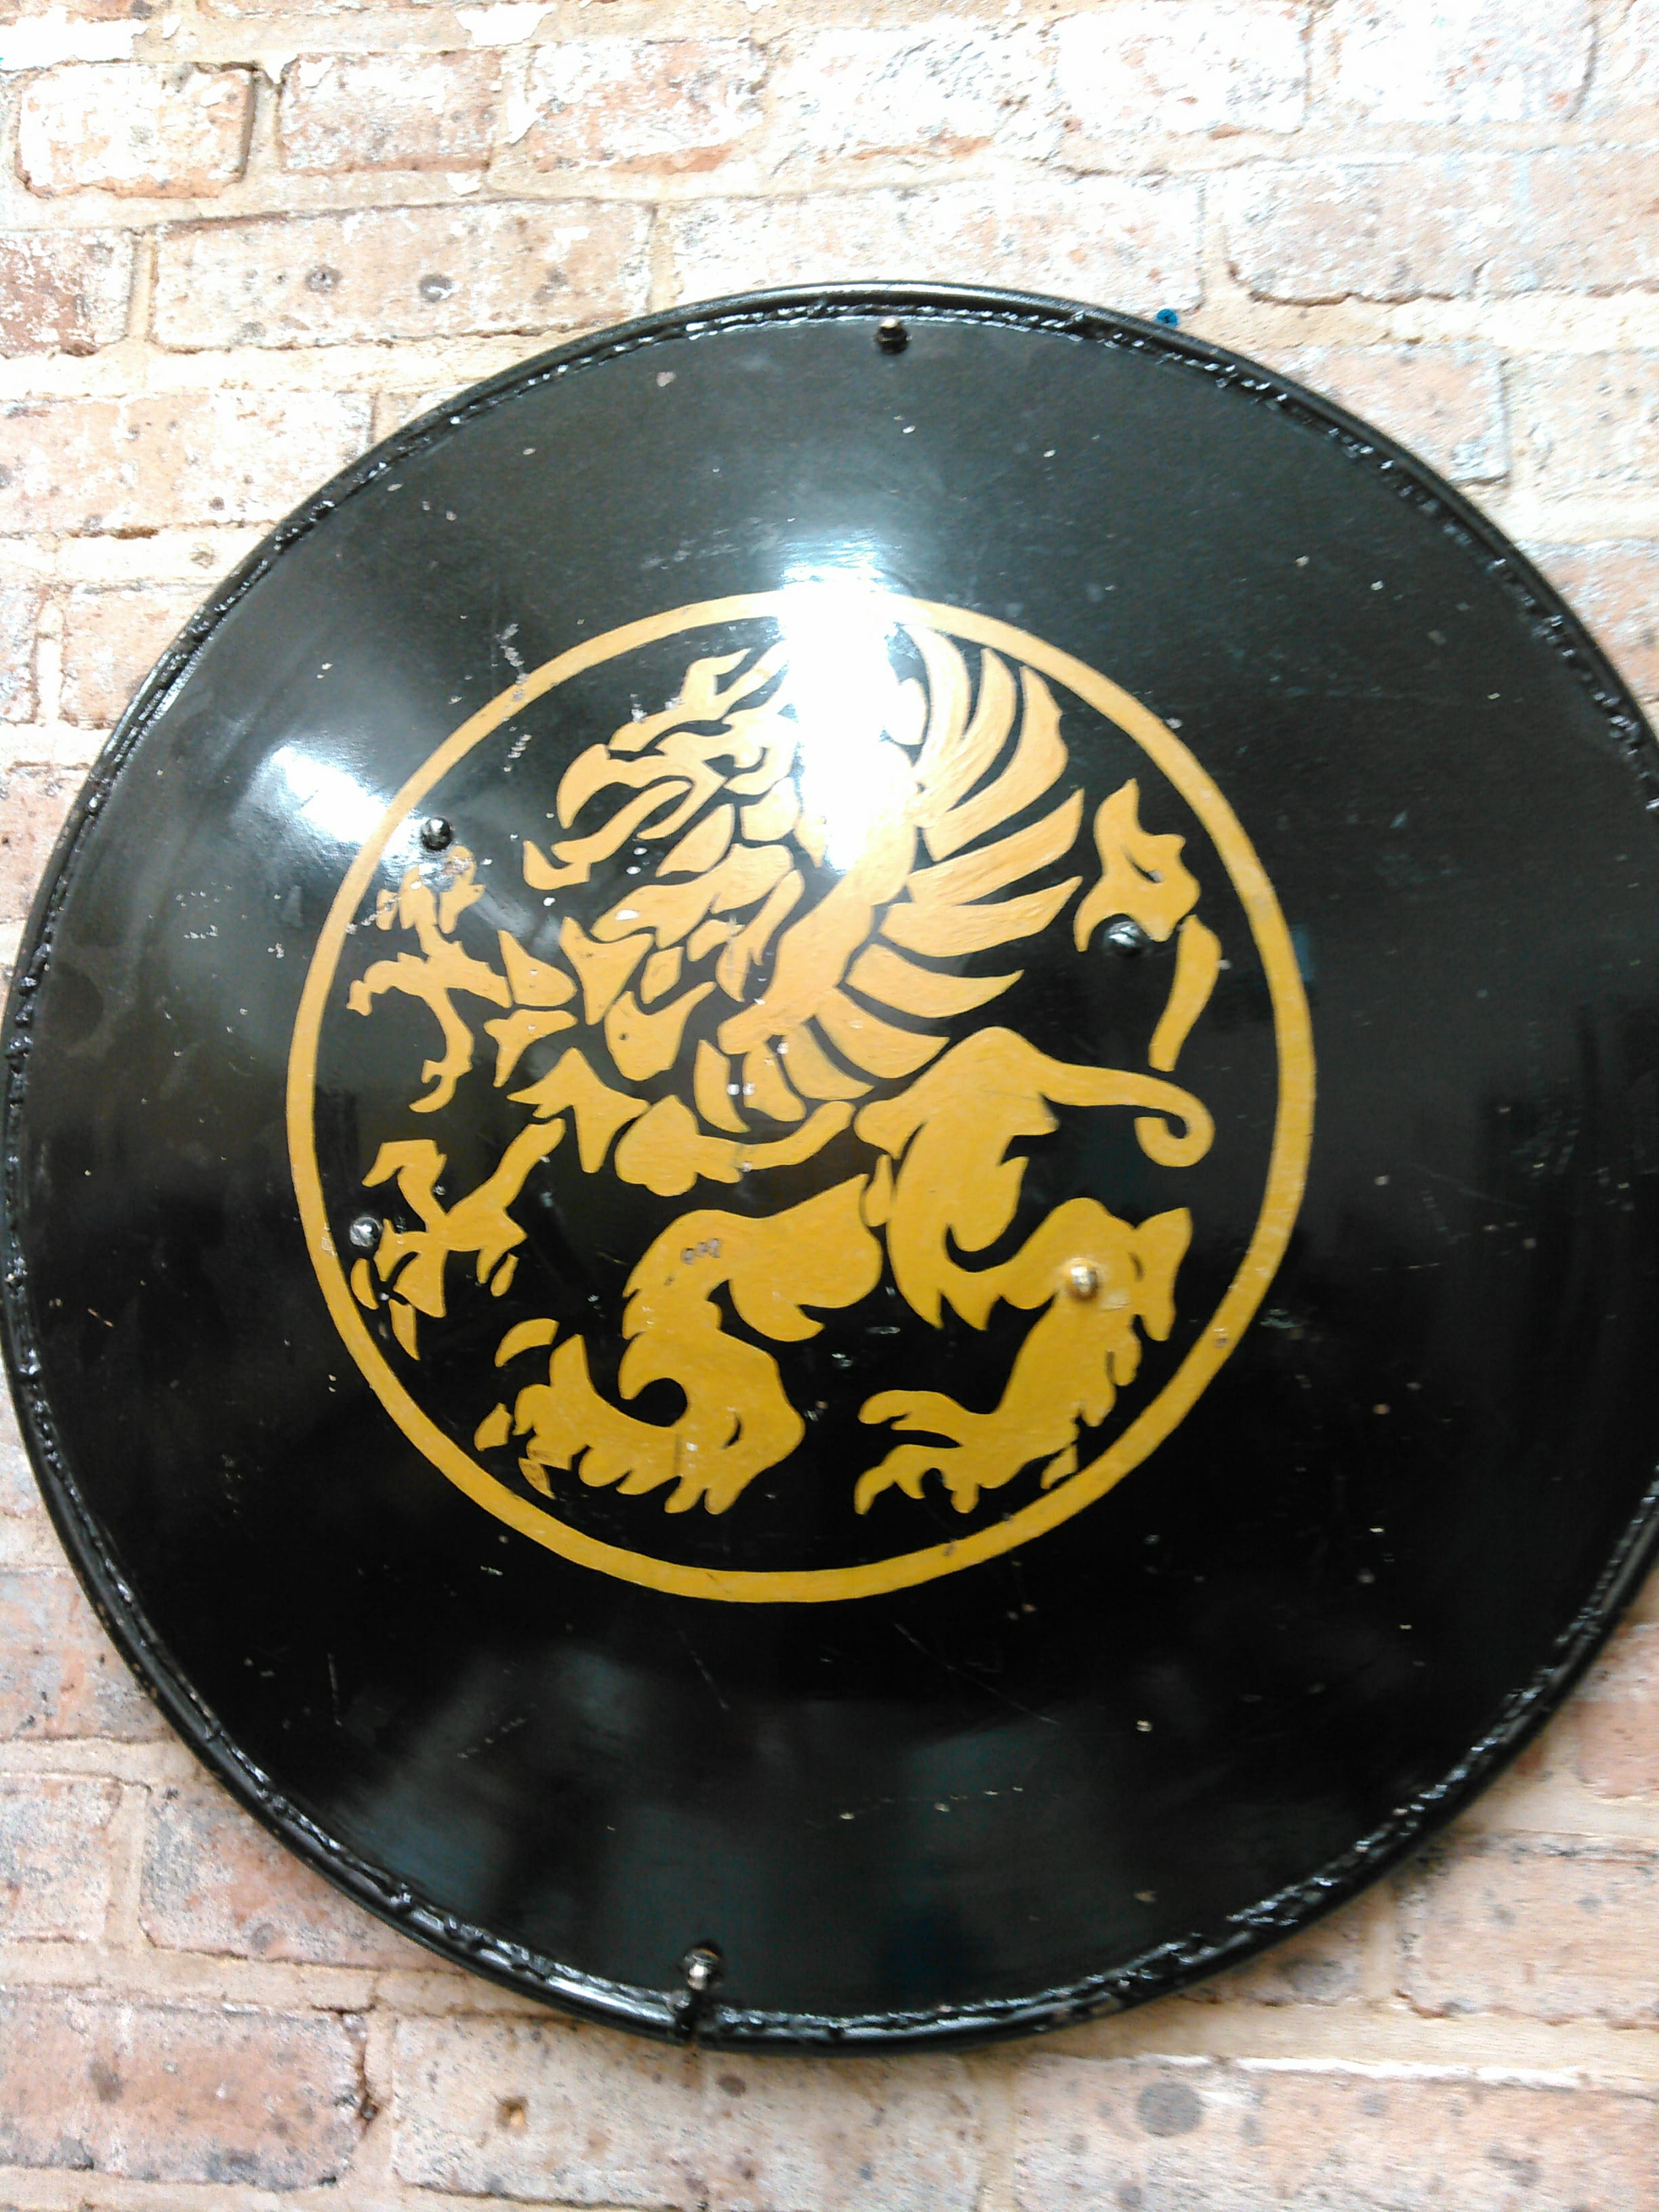 photograph of Gordon Rede's round shield